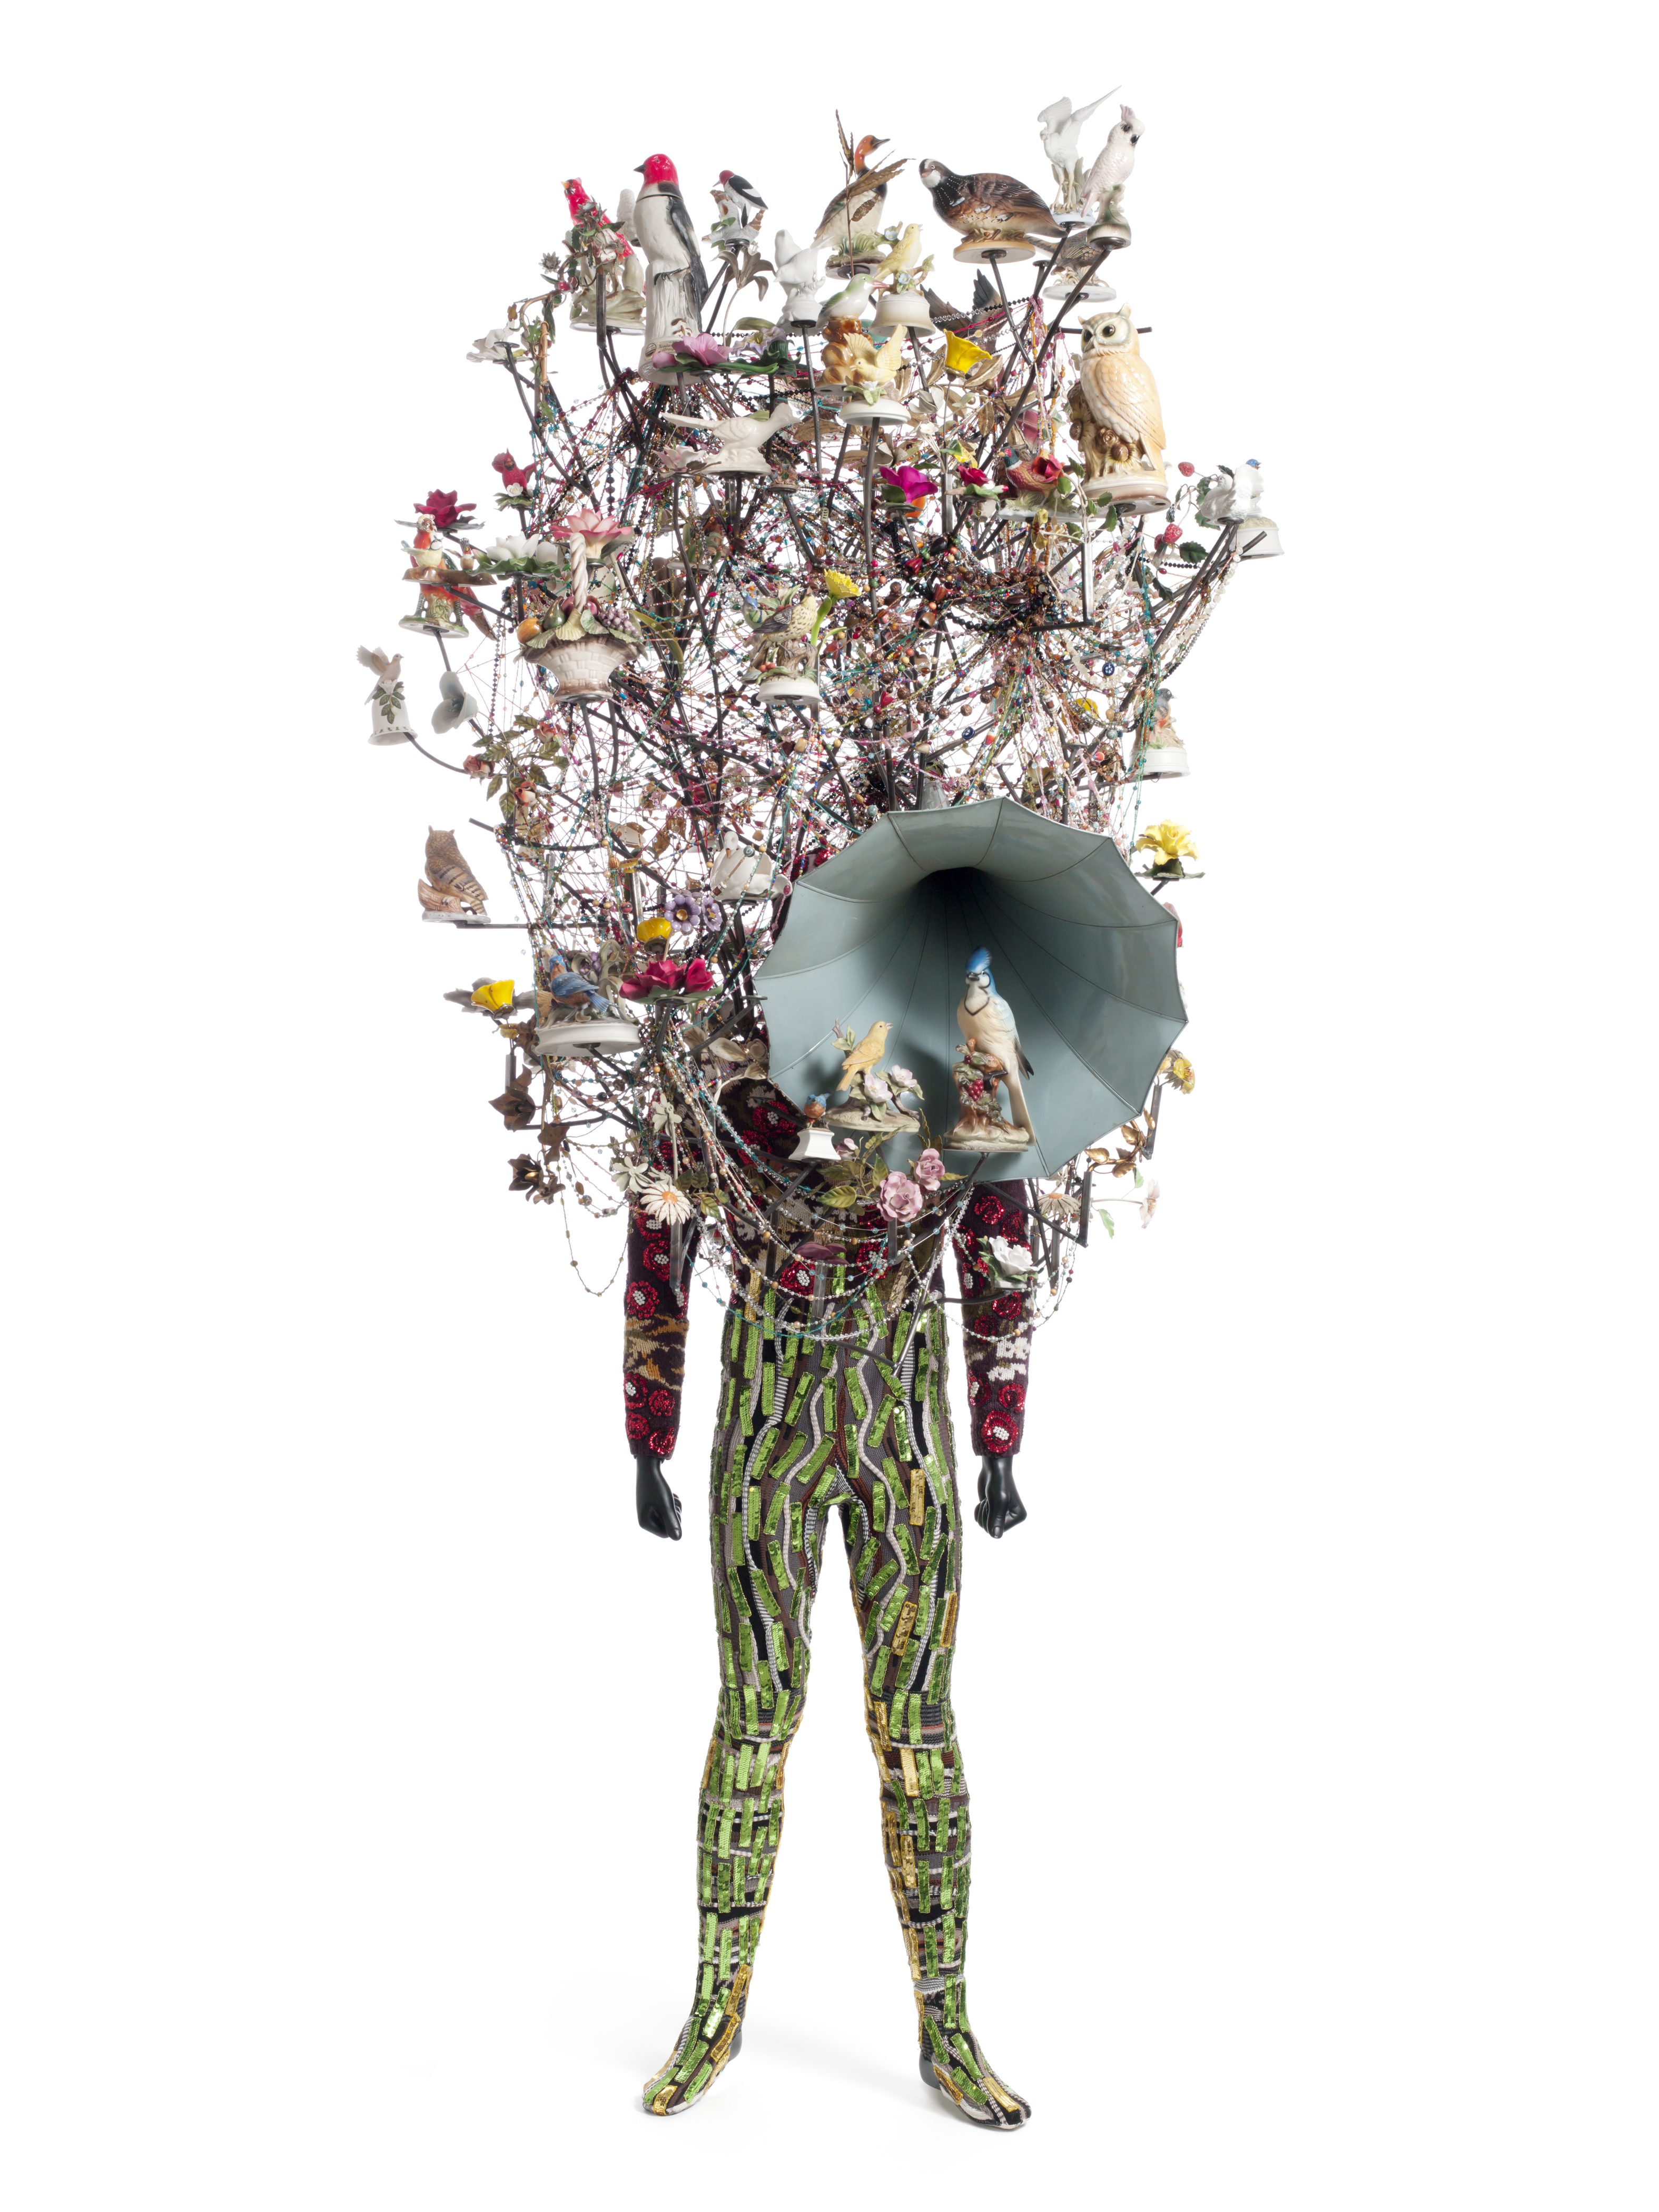 Nick Cave, Soundsuit, 2011. mixed media, 121 x 42 x 33 inches, ©Nick Cave. Photo by James Prinz Photography. Courtesy of the artist and Jack Shainman Gallery, New York.